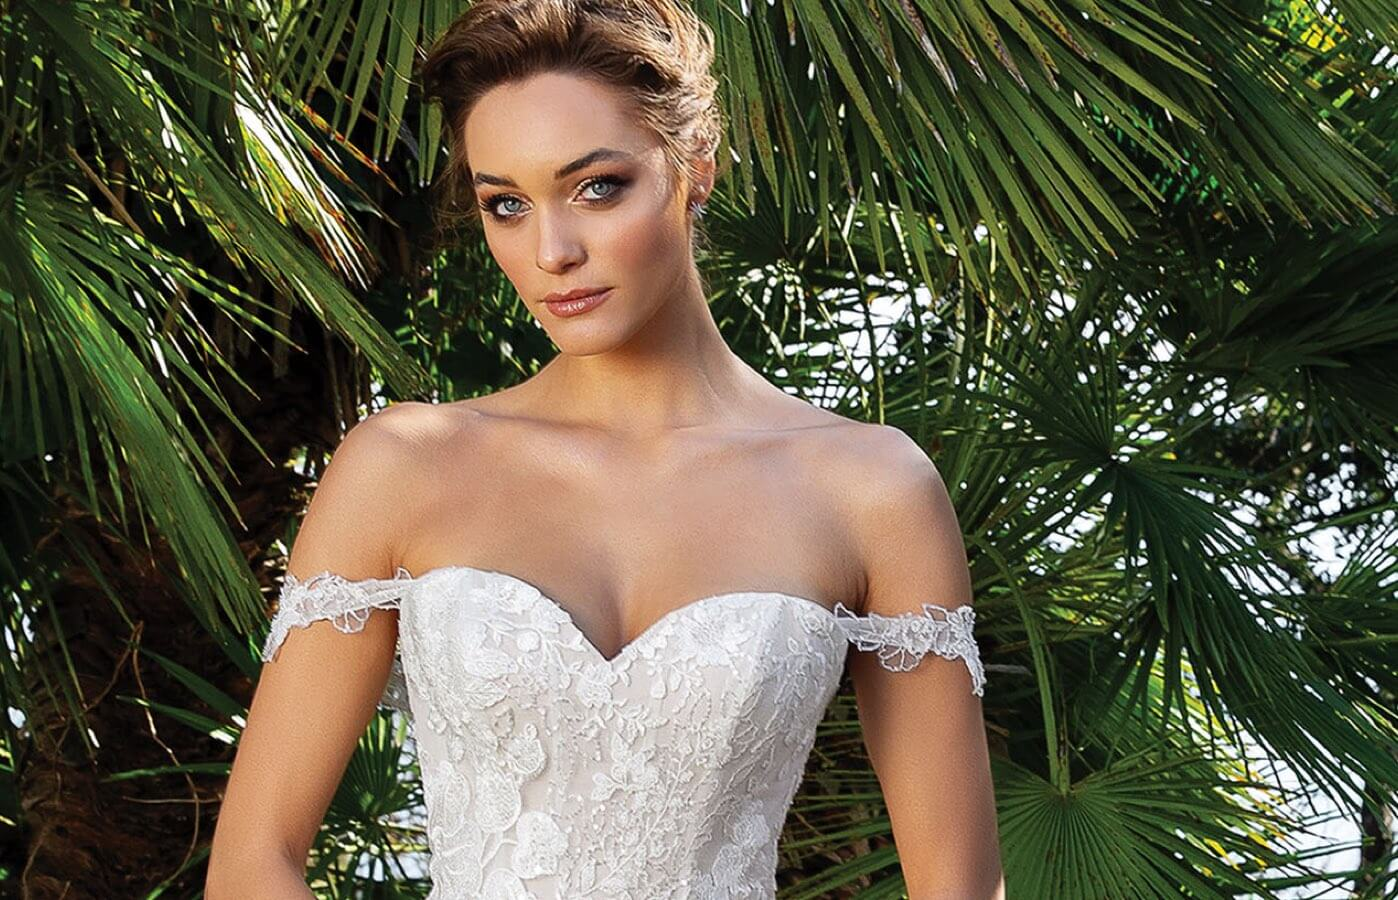 Model wearing white bridal gown